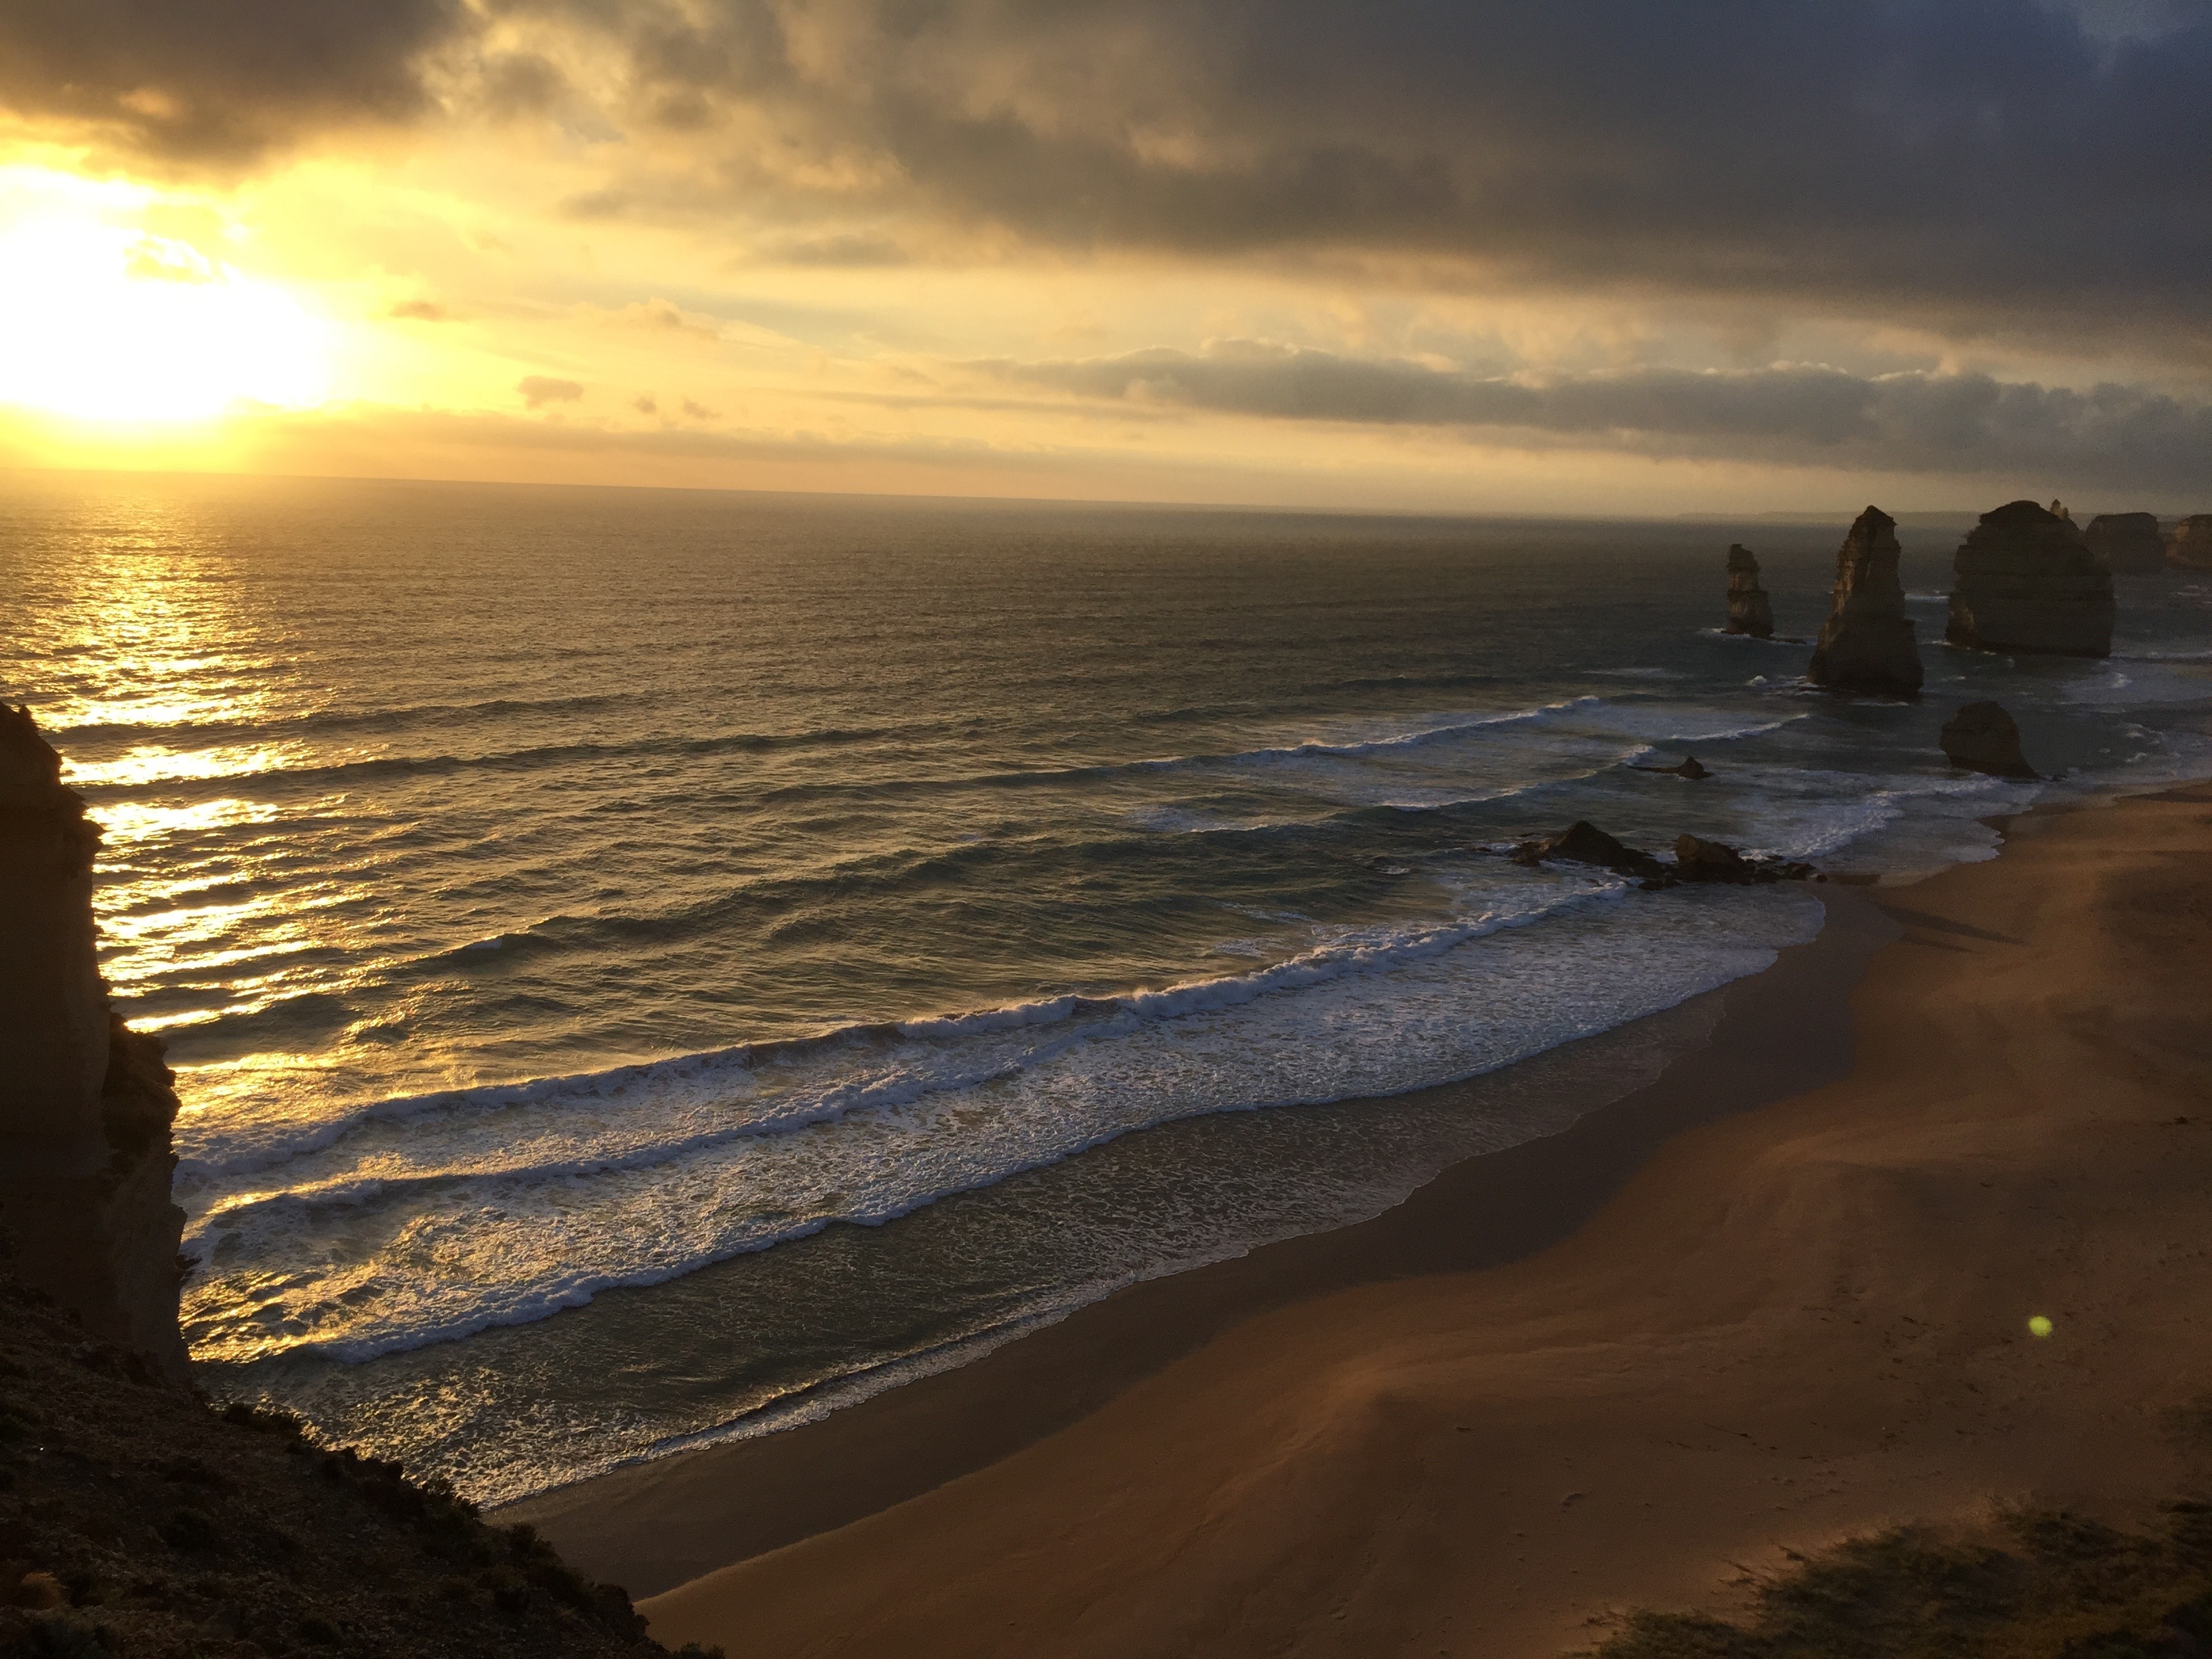 Sunset over the Twelve Apostles, south Coast of Victoria, Australia.